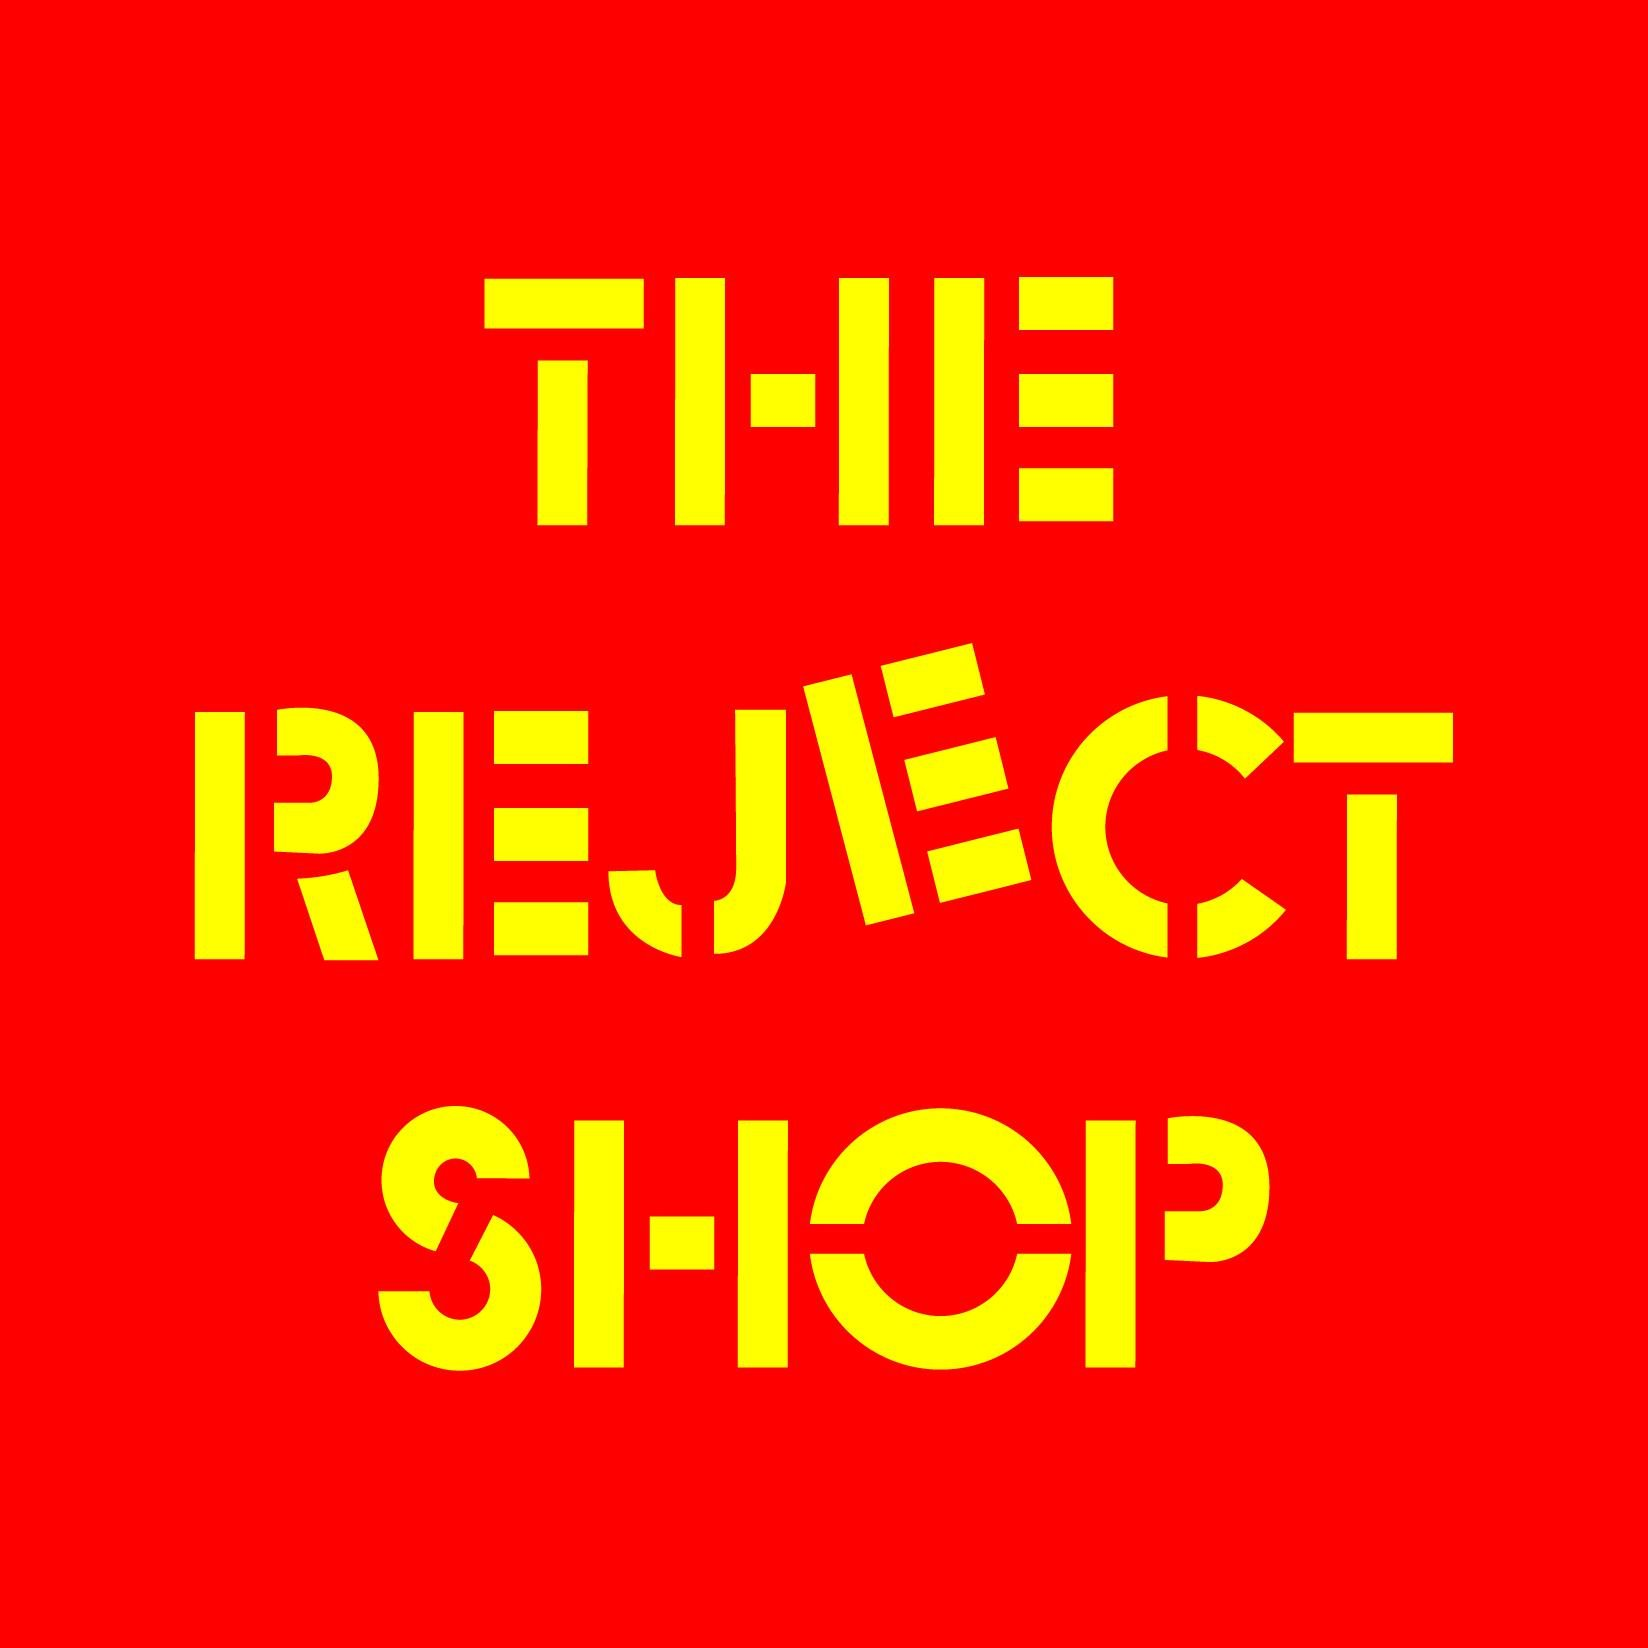 The Reject Shop opening hours